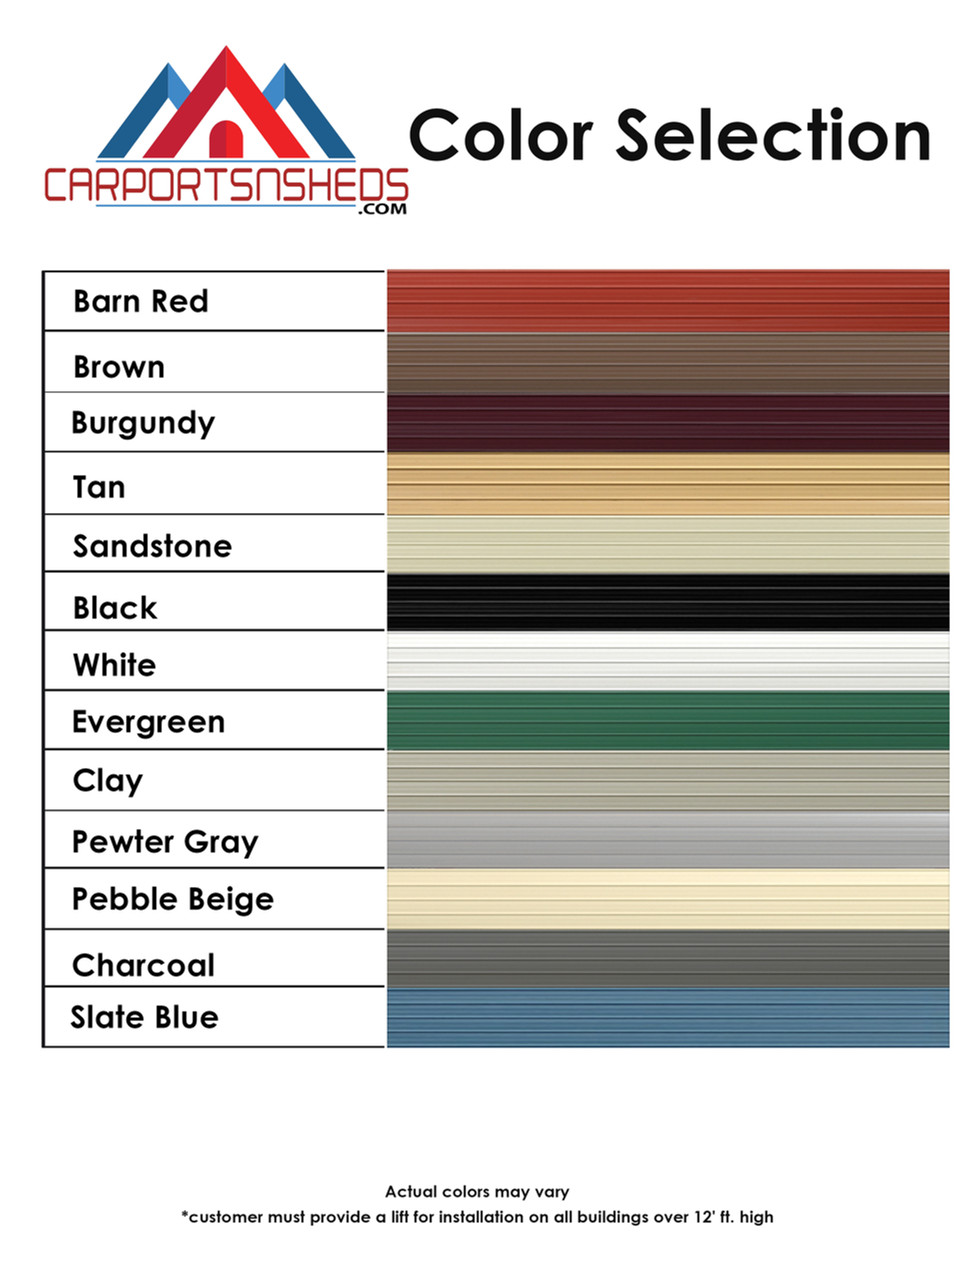 Color selection for carpot